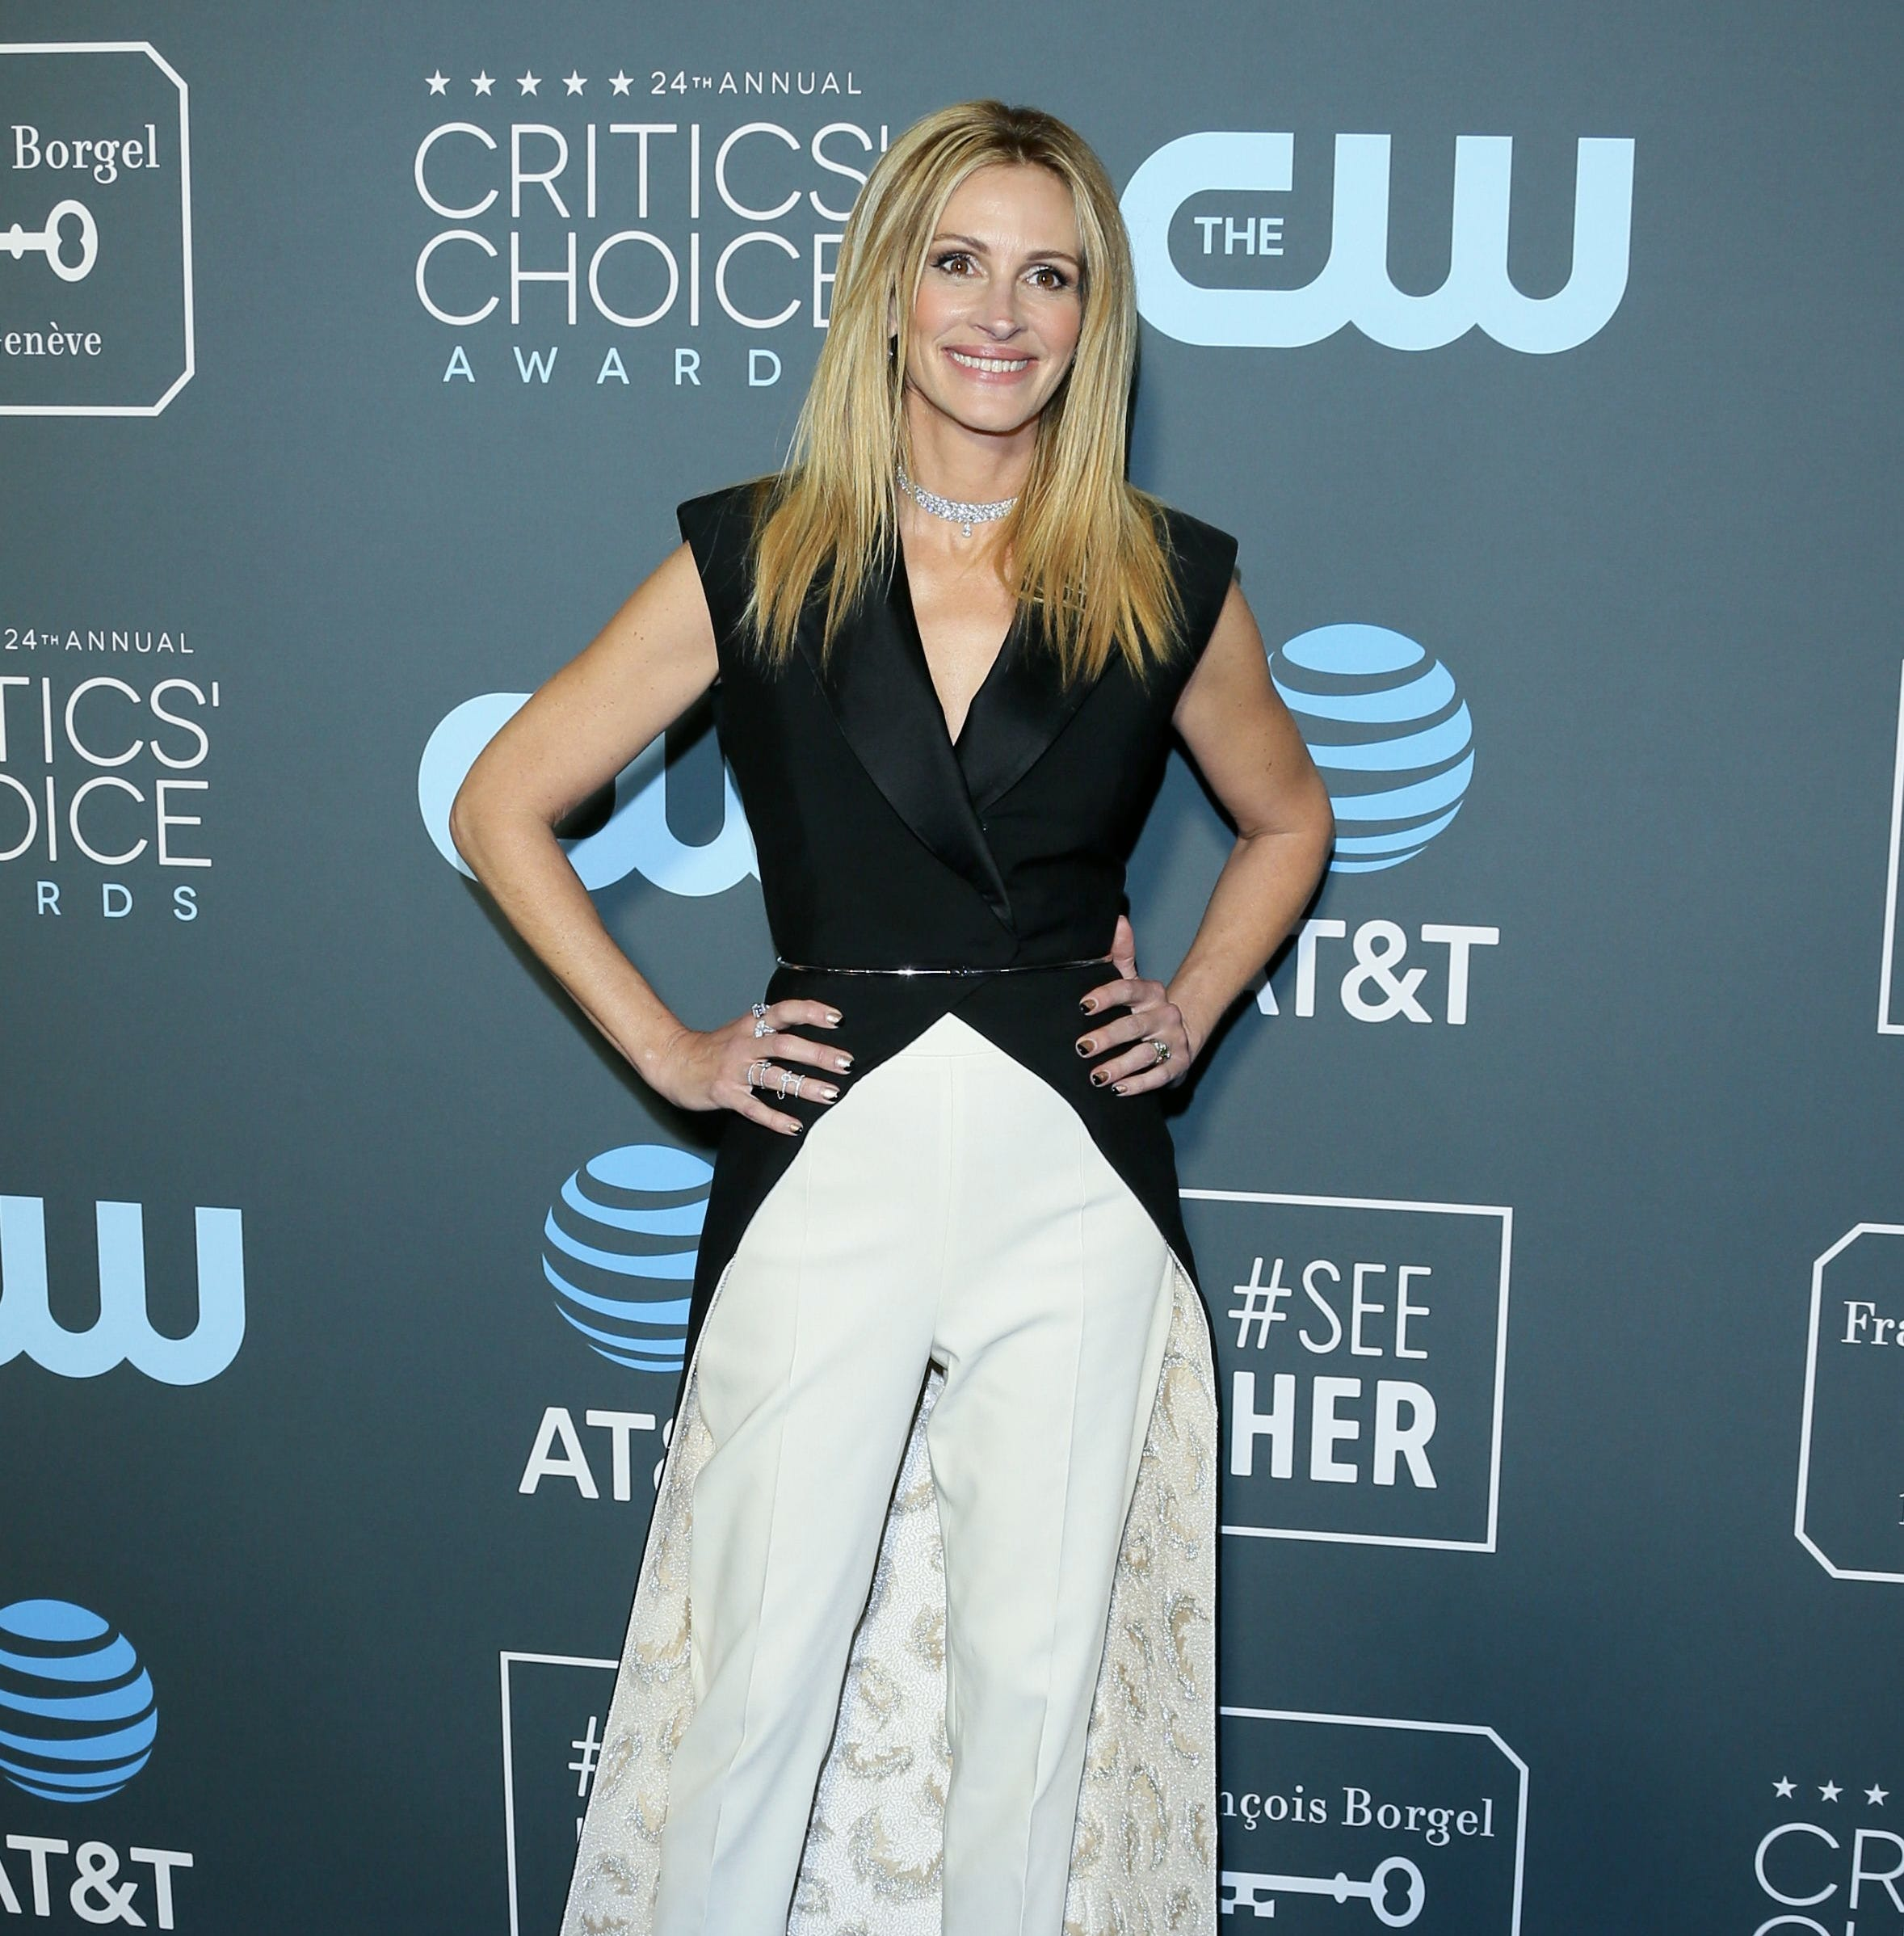 Actress Julia Roberts arrives for the 24th Critics' Choice Awards at Barker Hangar Santa Monica airport on January 13, 2019 in Santa Monica, California. (Photo by Jean-Baptiste LACROIX / AFP)JEAN-BAPTISTE LACROIX/AFP/Getty Images ORG XMIT: 24th Crit ORIG FILE ID: AFP_1C76GD